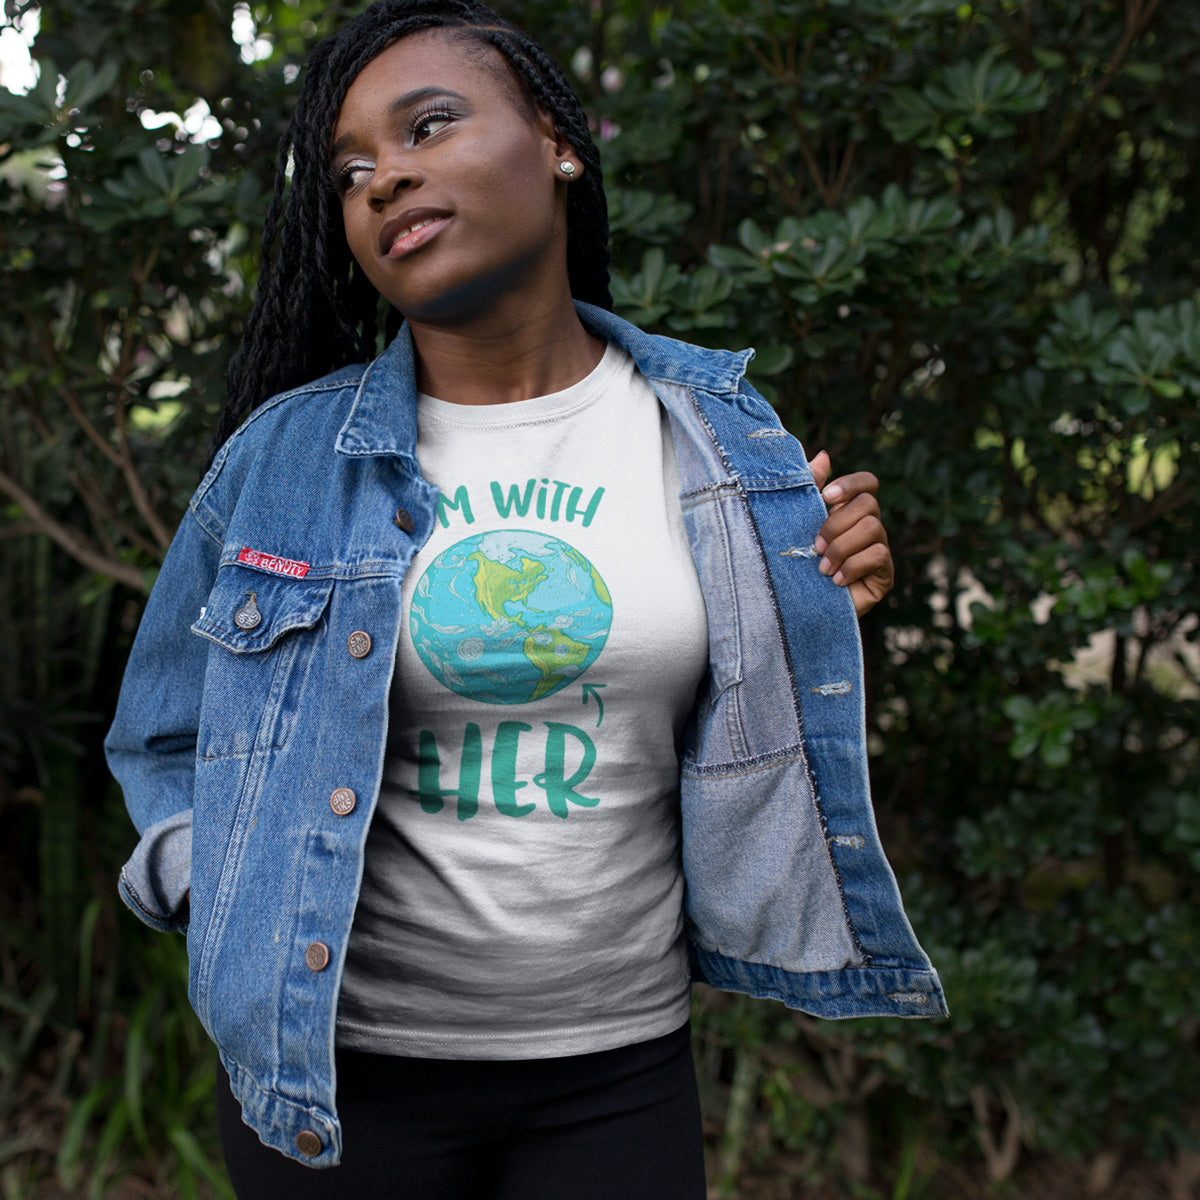 I'm With HER - Mother Earth Support Ladies' Boyfriend T-Shirt - pipercleo.com